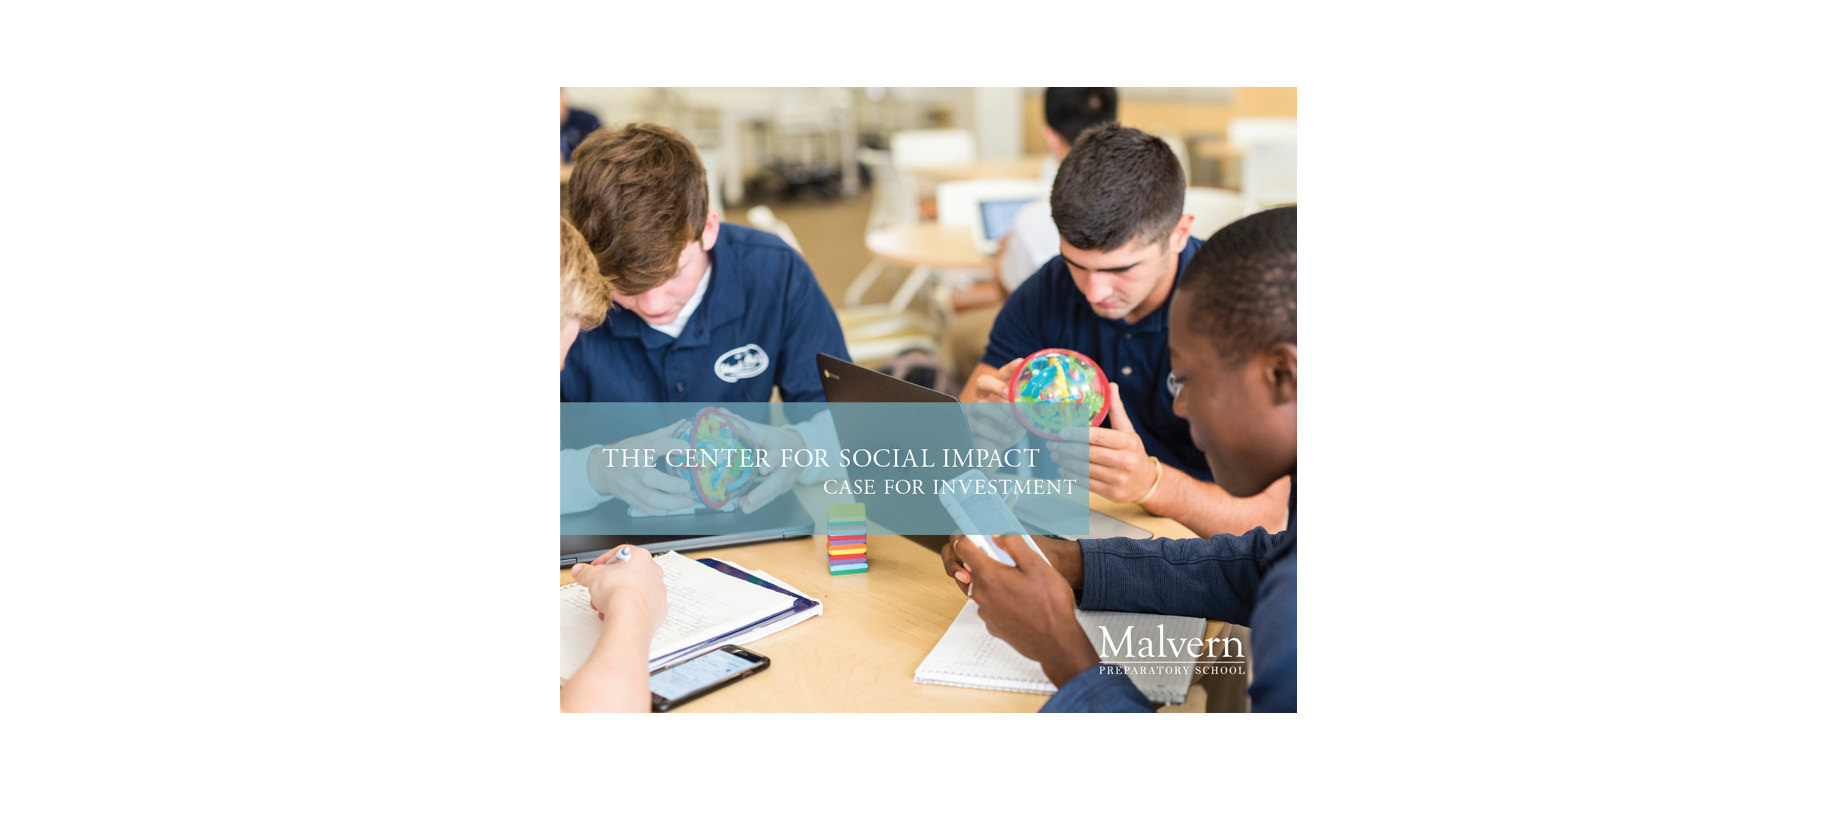 kelsh-wilson-design-malvern-prep-capital-campaign-case-statement-front-cover.jpg